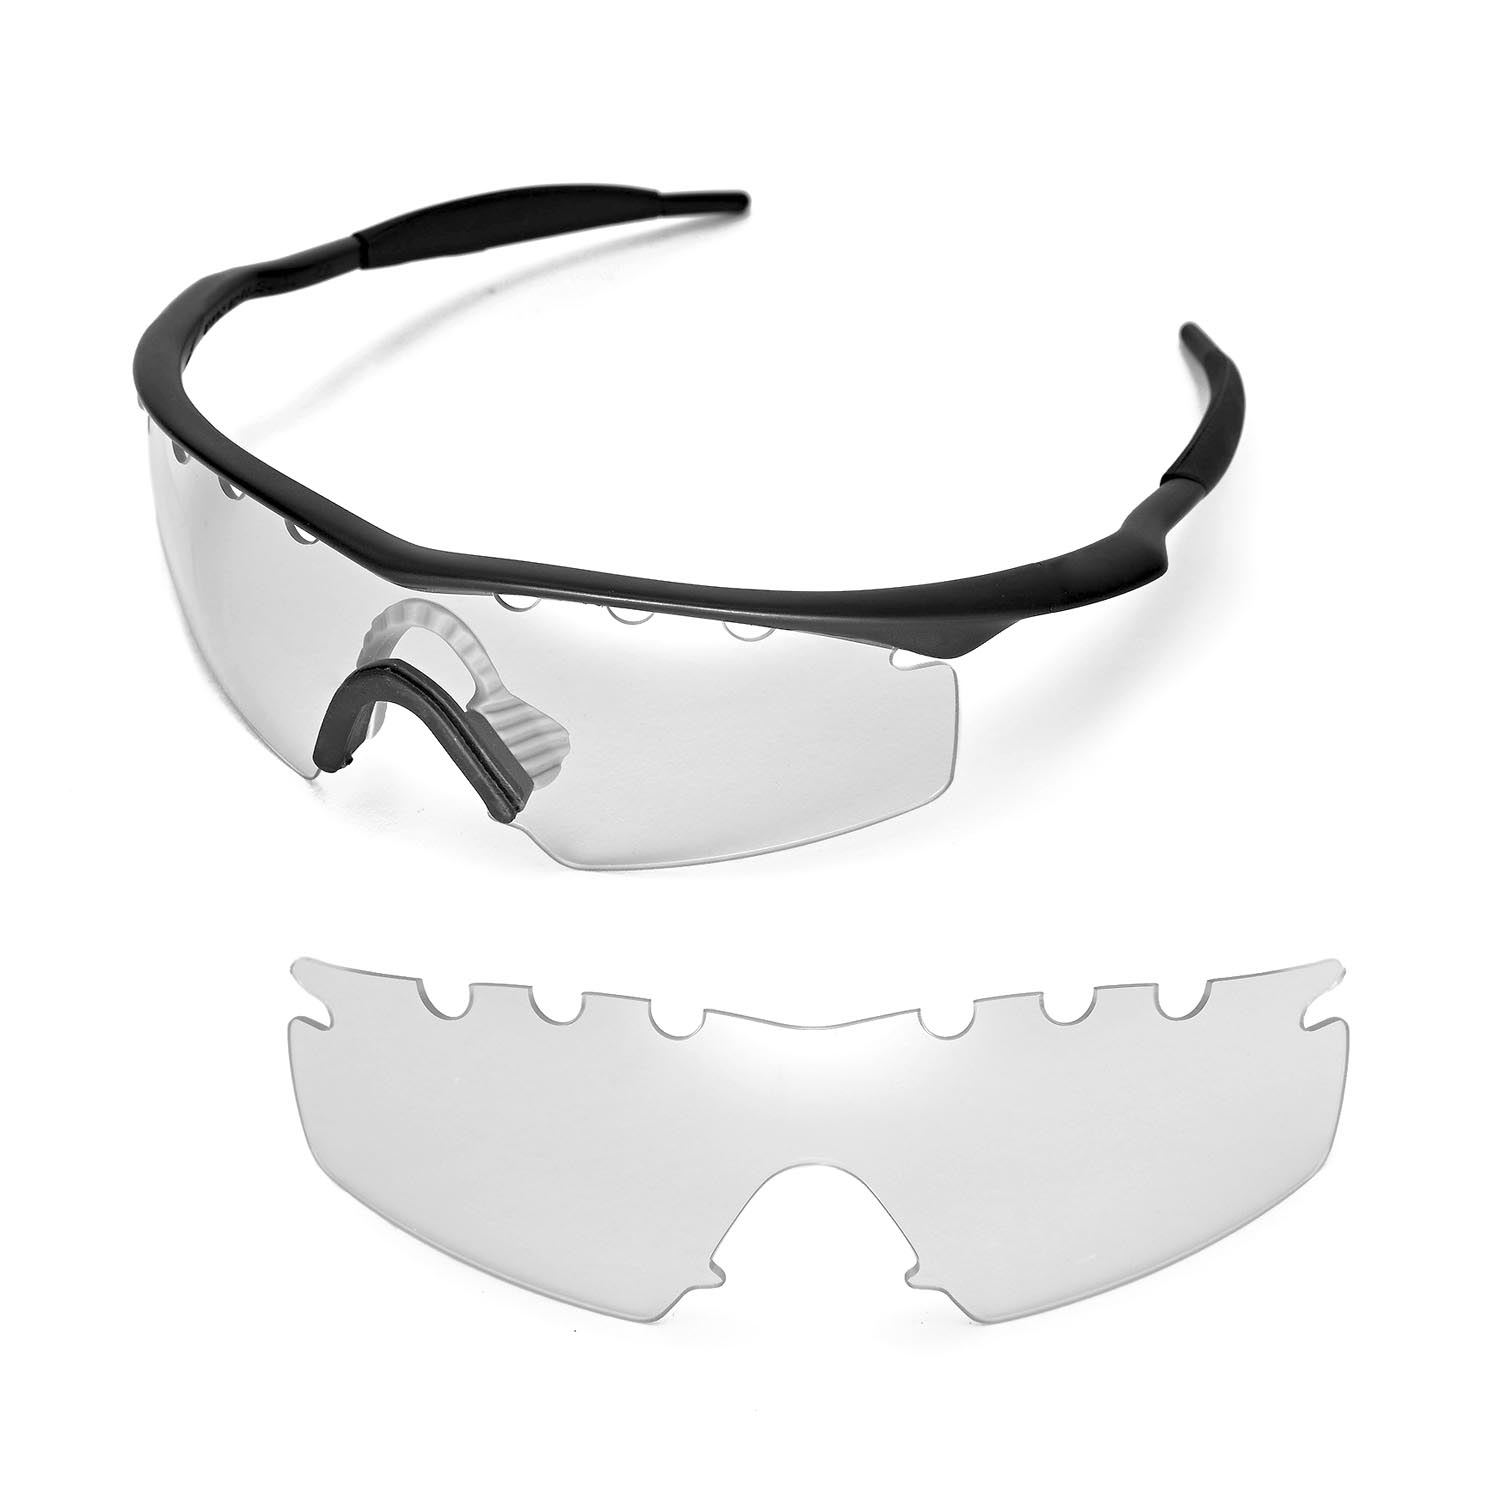 8c3eb4ebb86 Details about Walleva Clear Vented Replacement Lenses For Oakley M Frame  Strike Sunglasses